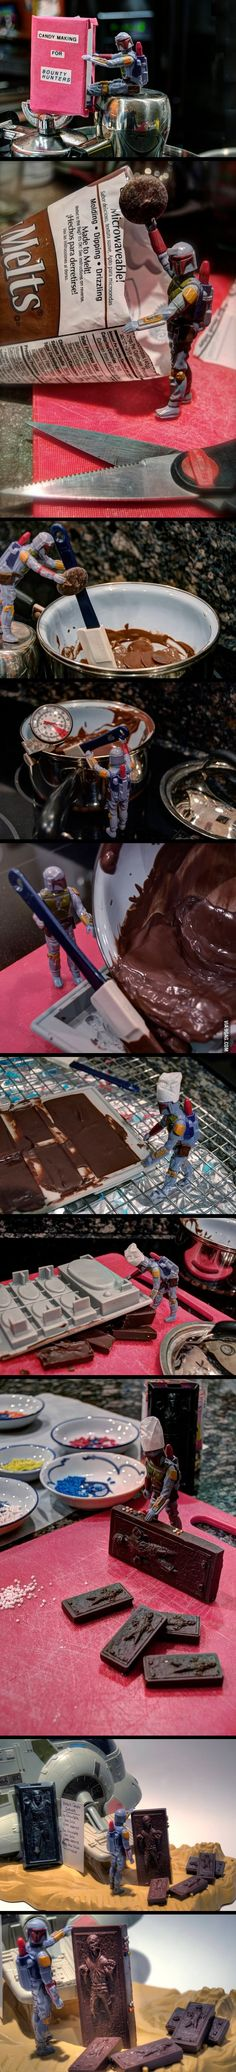 Boba Fett making chocolate Han Solos  This is the cutest thing ever!!!!